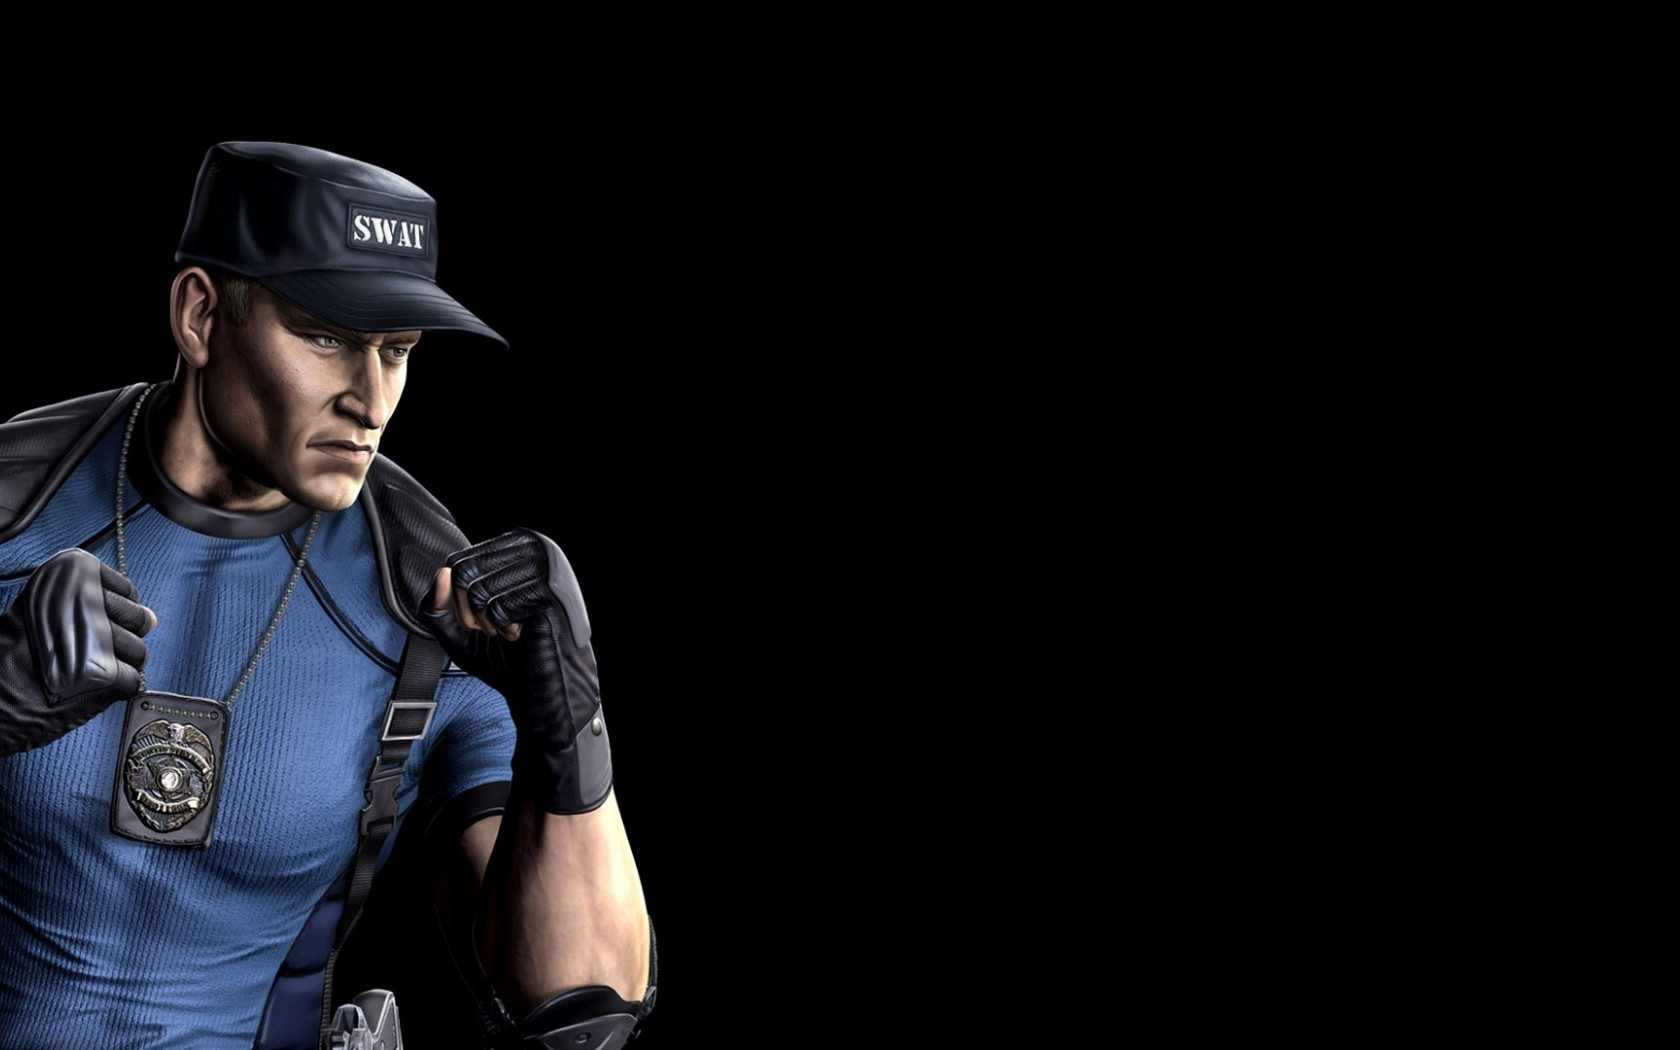 Mortal Kombat wallpaper Stryker